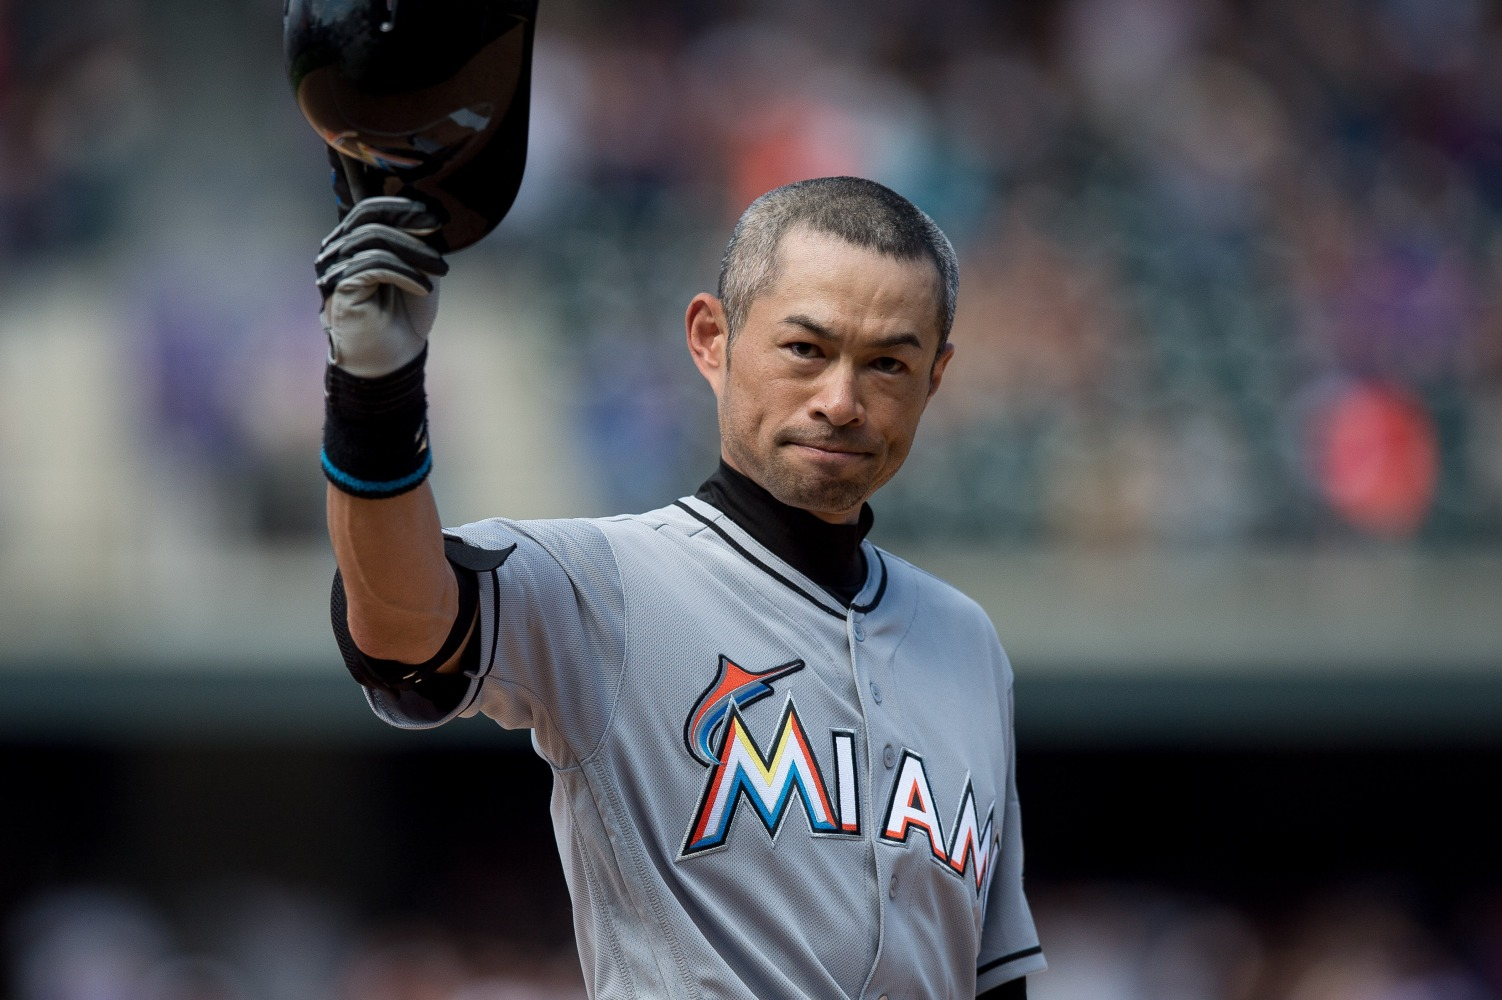 3000 is the magic number for baseball star Ichiro